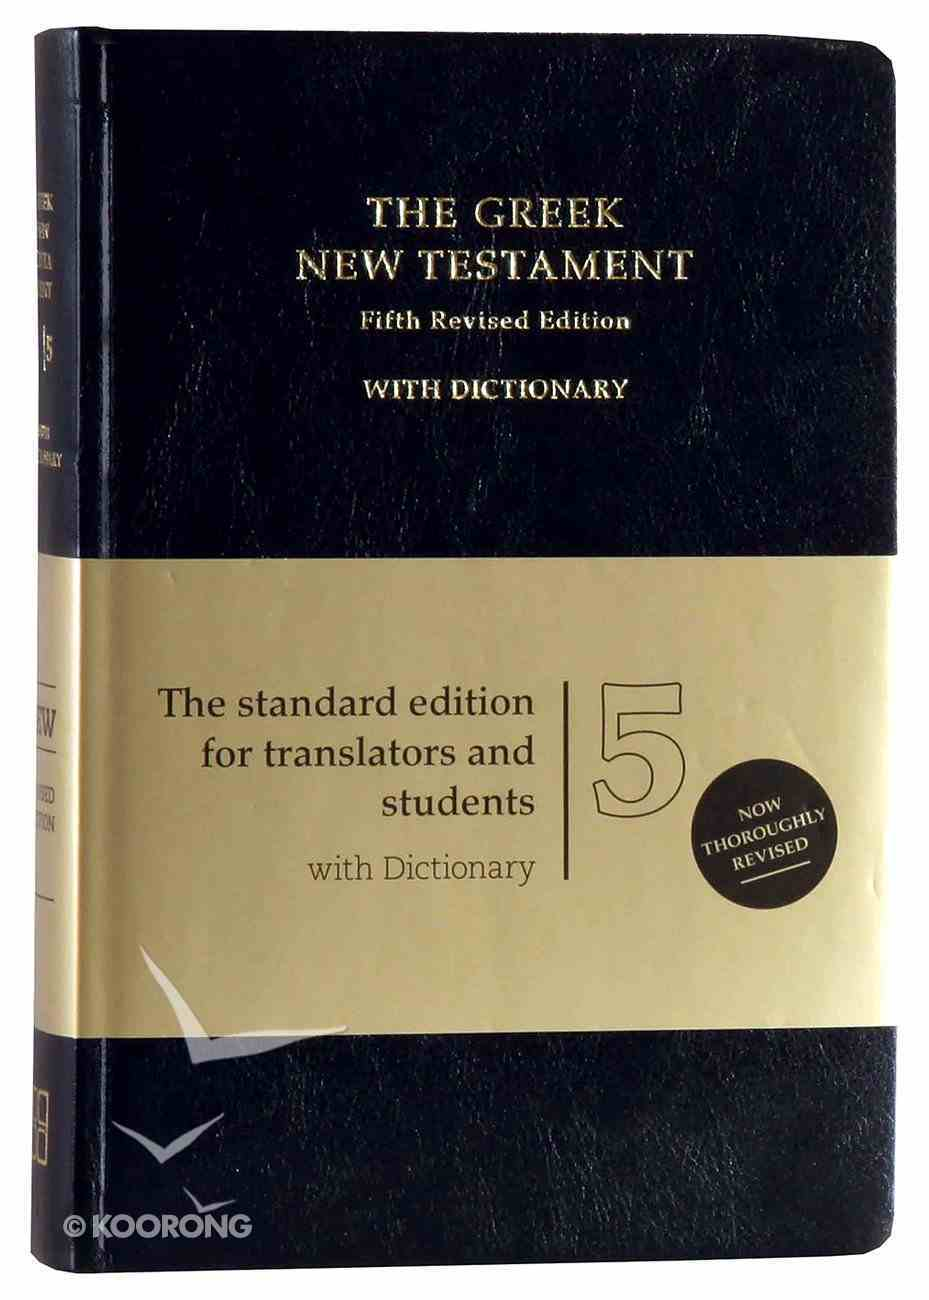 Greek New Testament Ubs5 Fifth Revised Edition With Concise Greek English Dictionary Imitation Leather